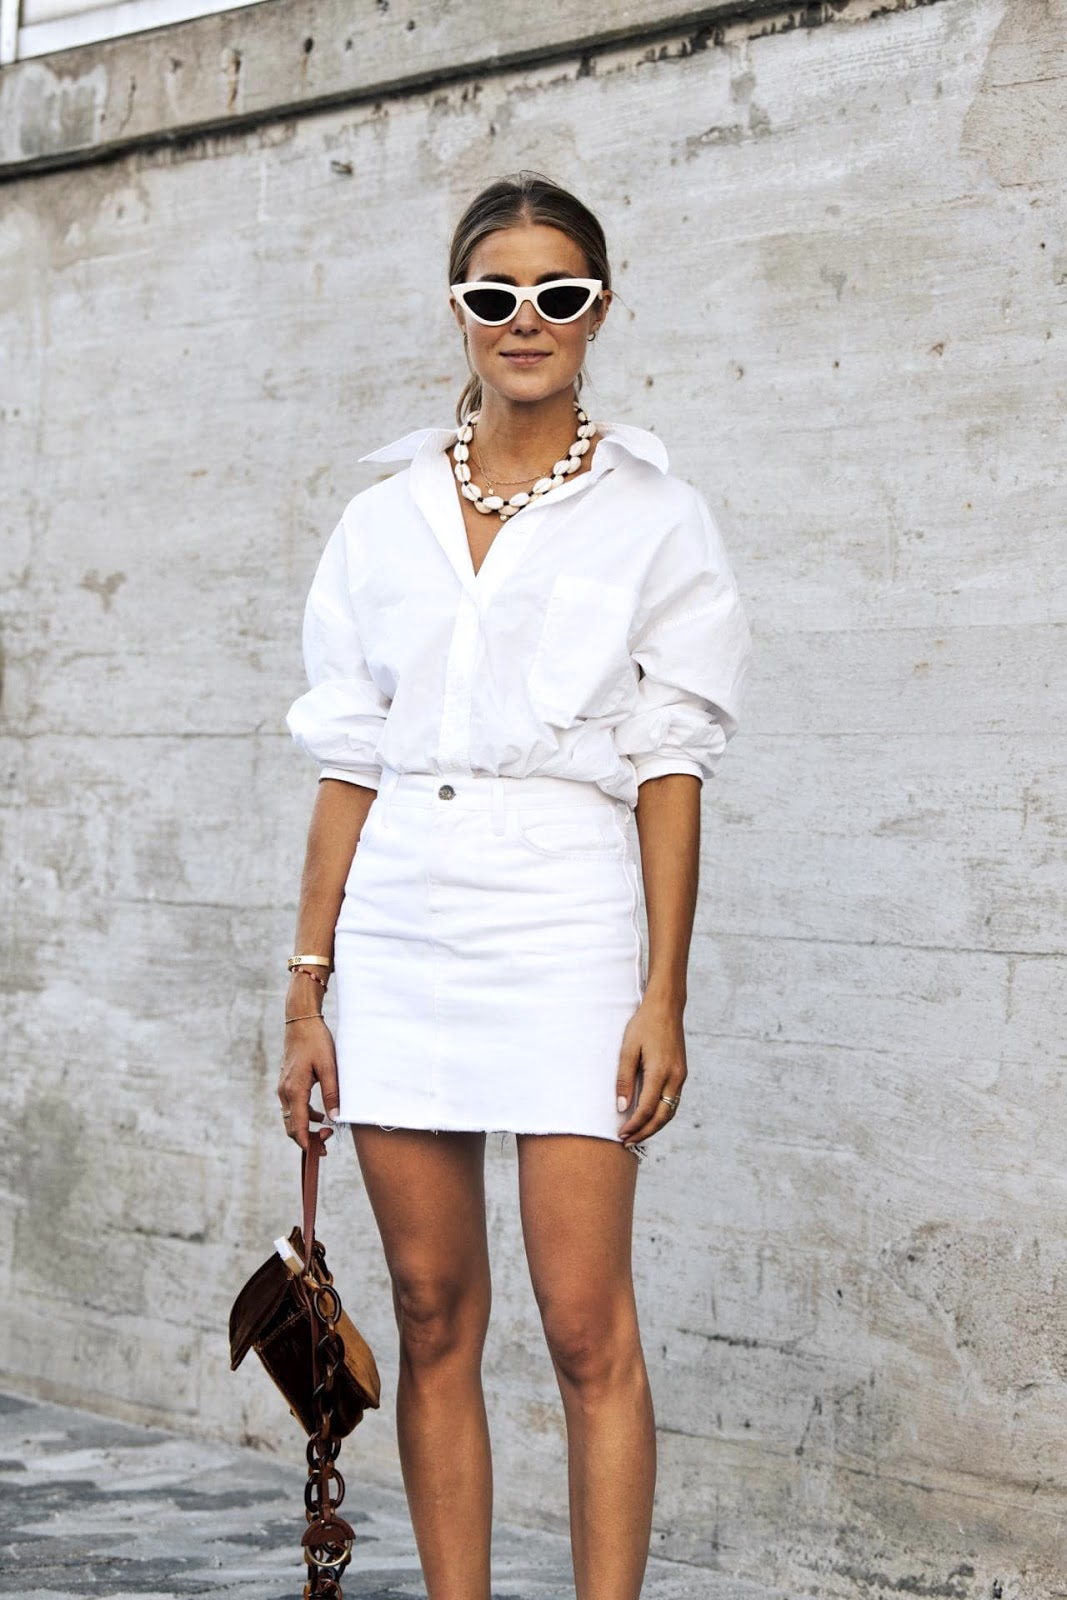 The Scandi Girl Way to Wear an All-White Summer Outfit